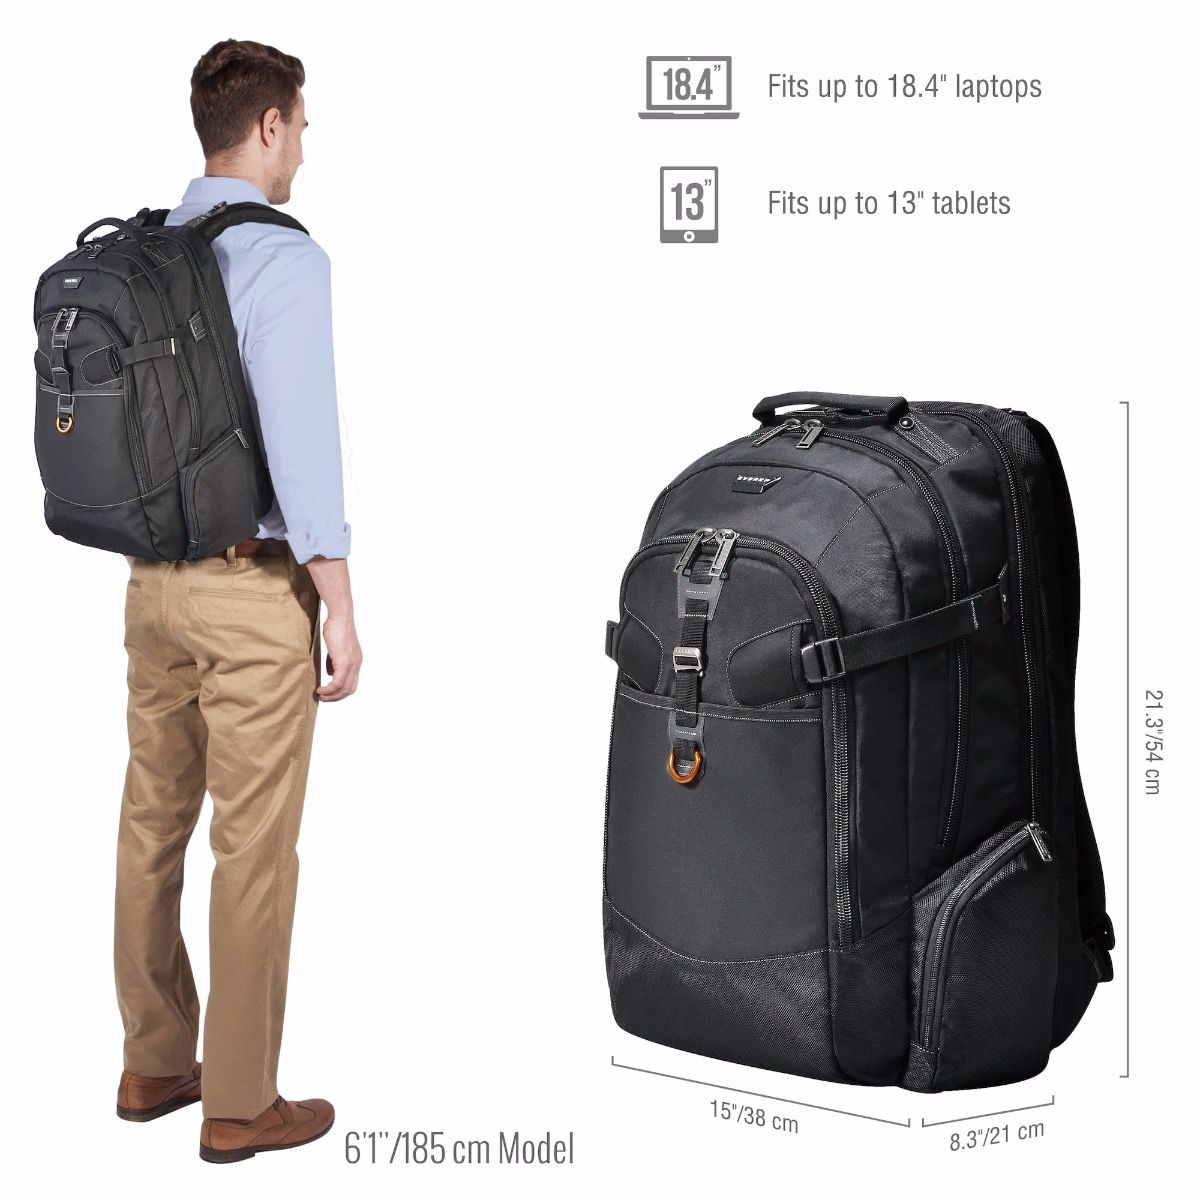 EVERKI Business 120 Travel Friendly Laptop Backpack, up to